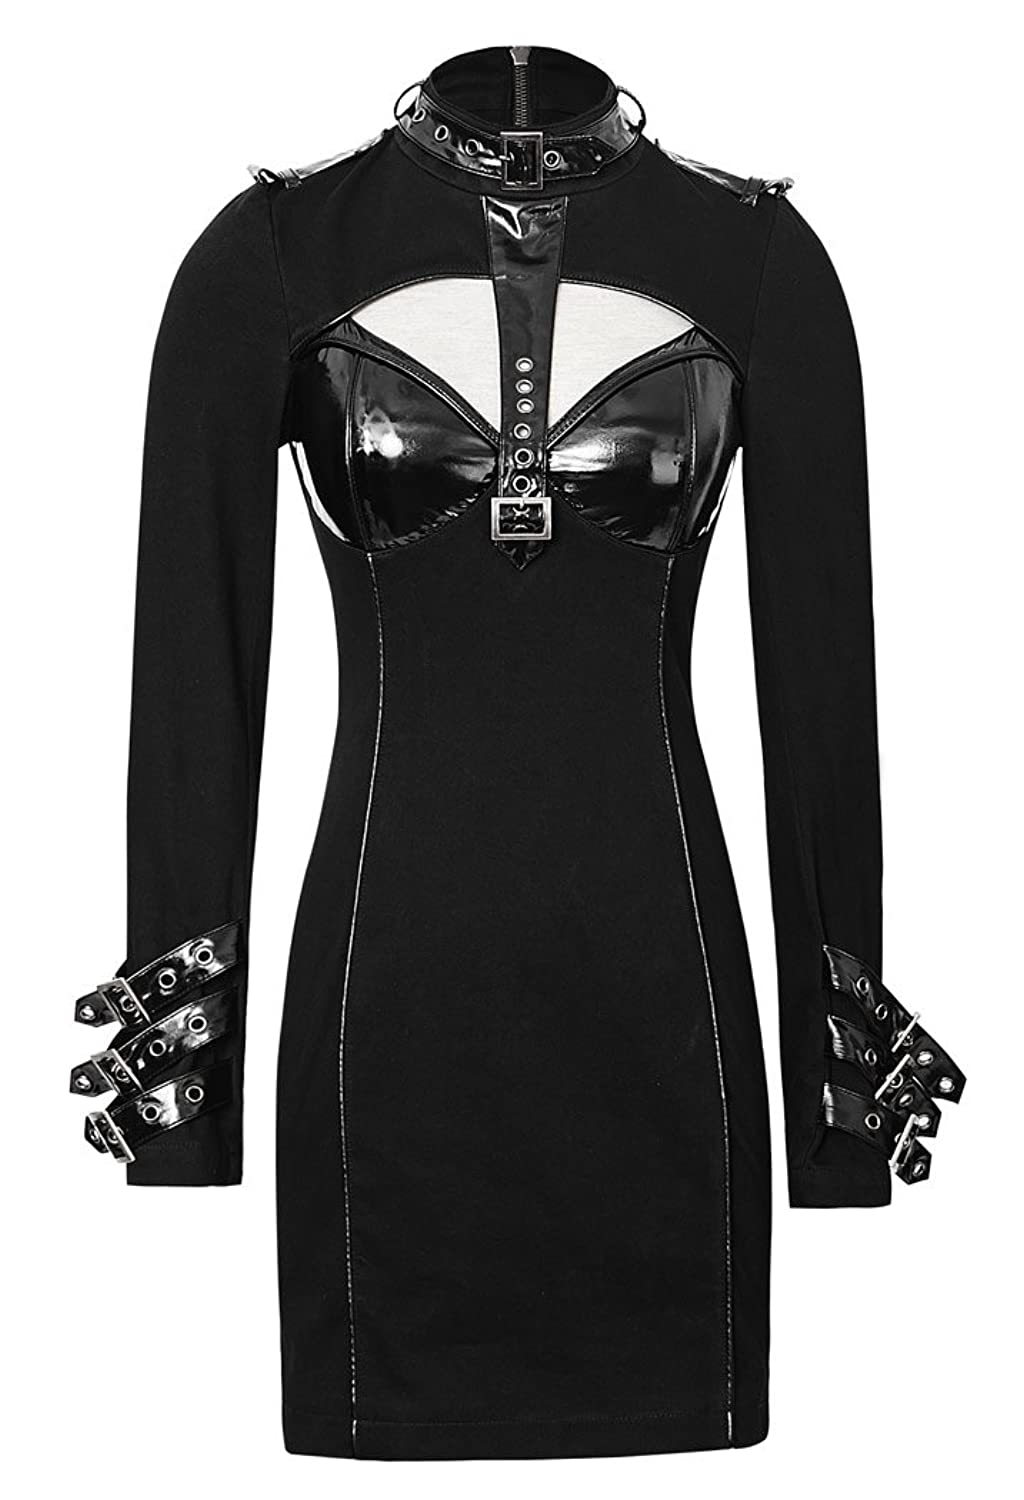 Punk Rave Women's Dress